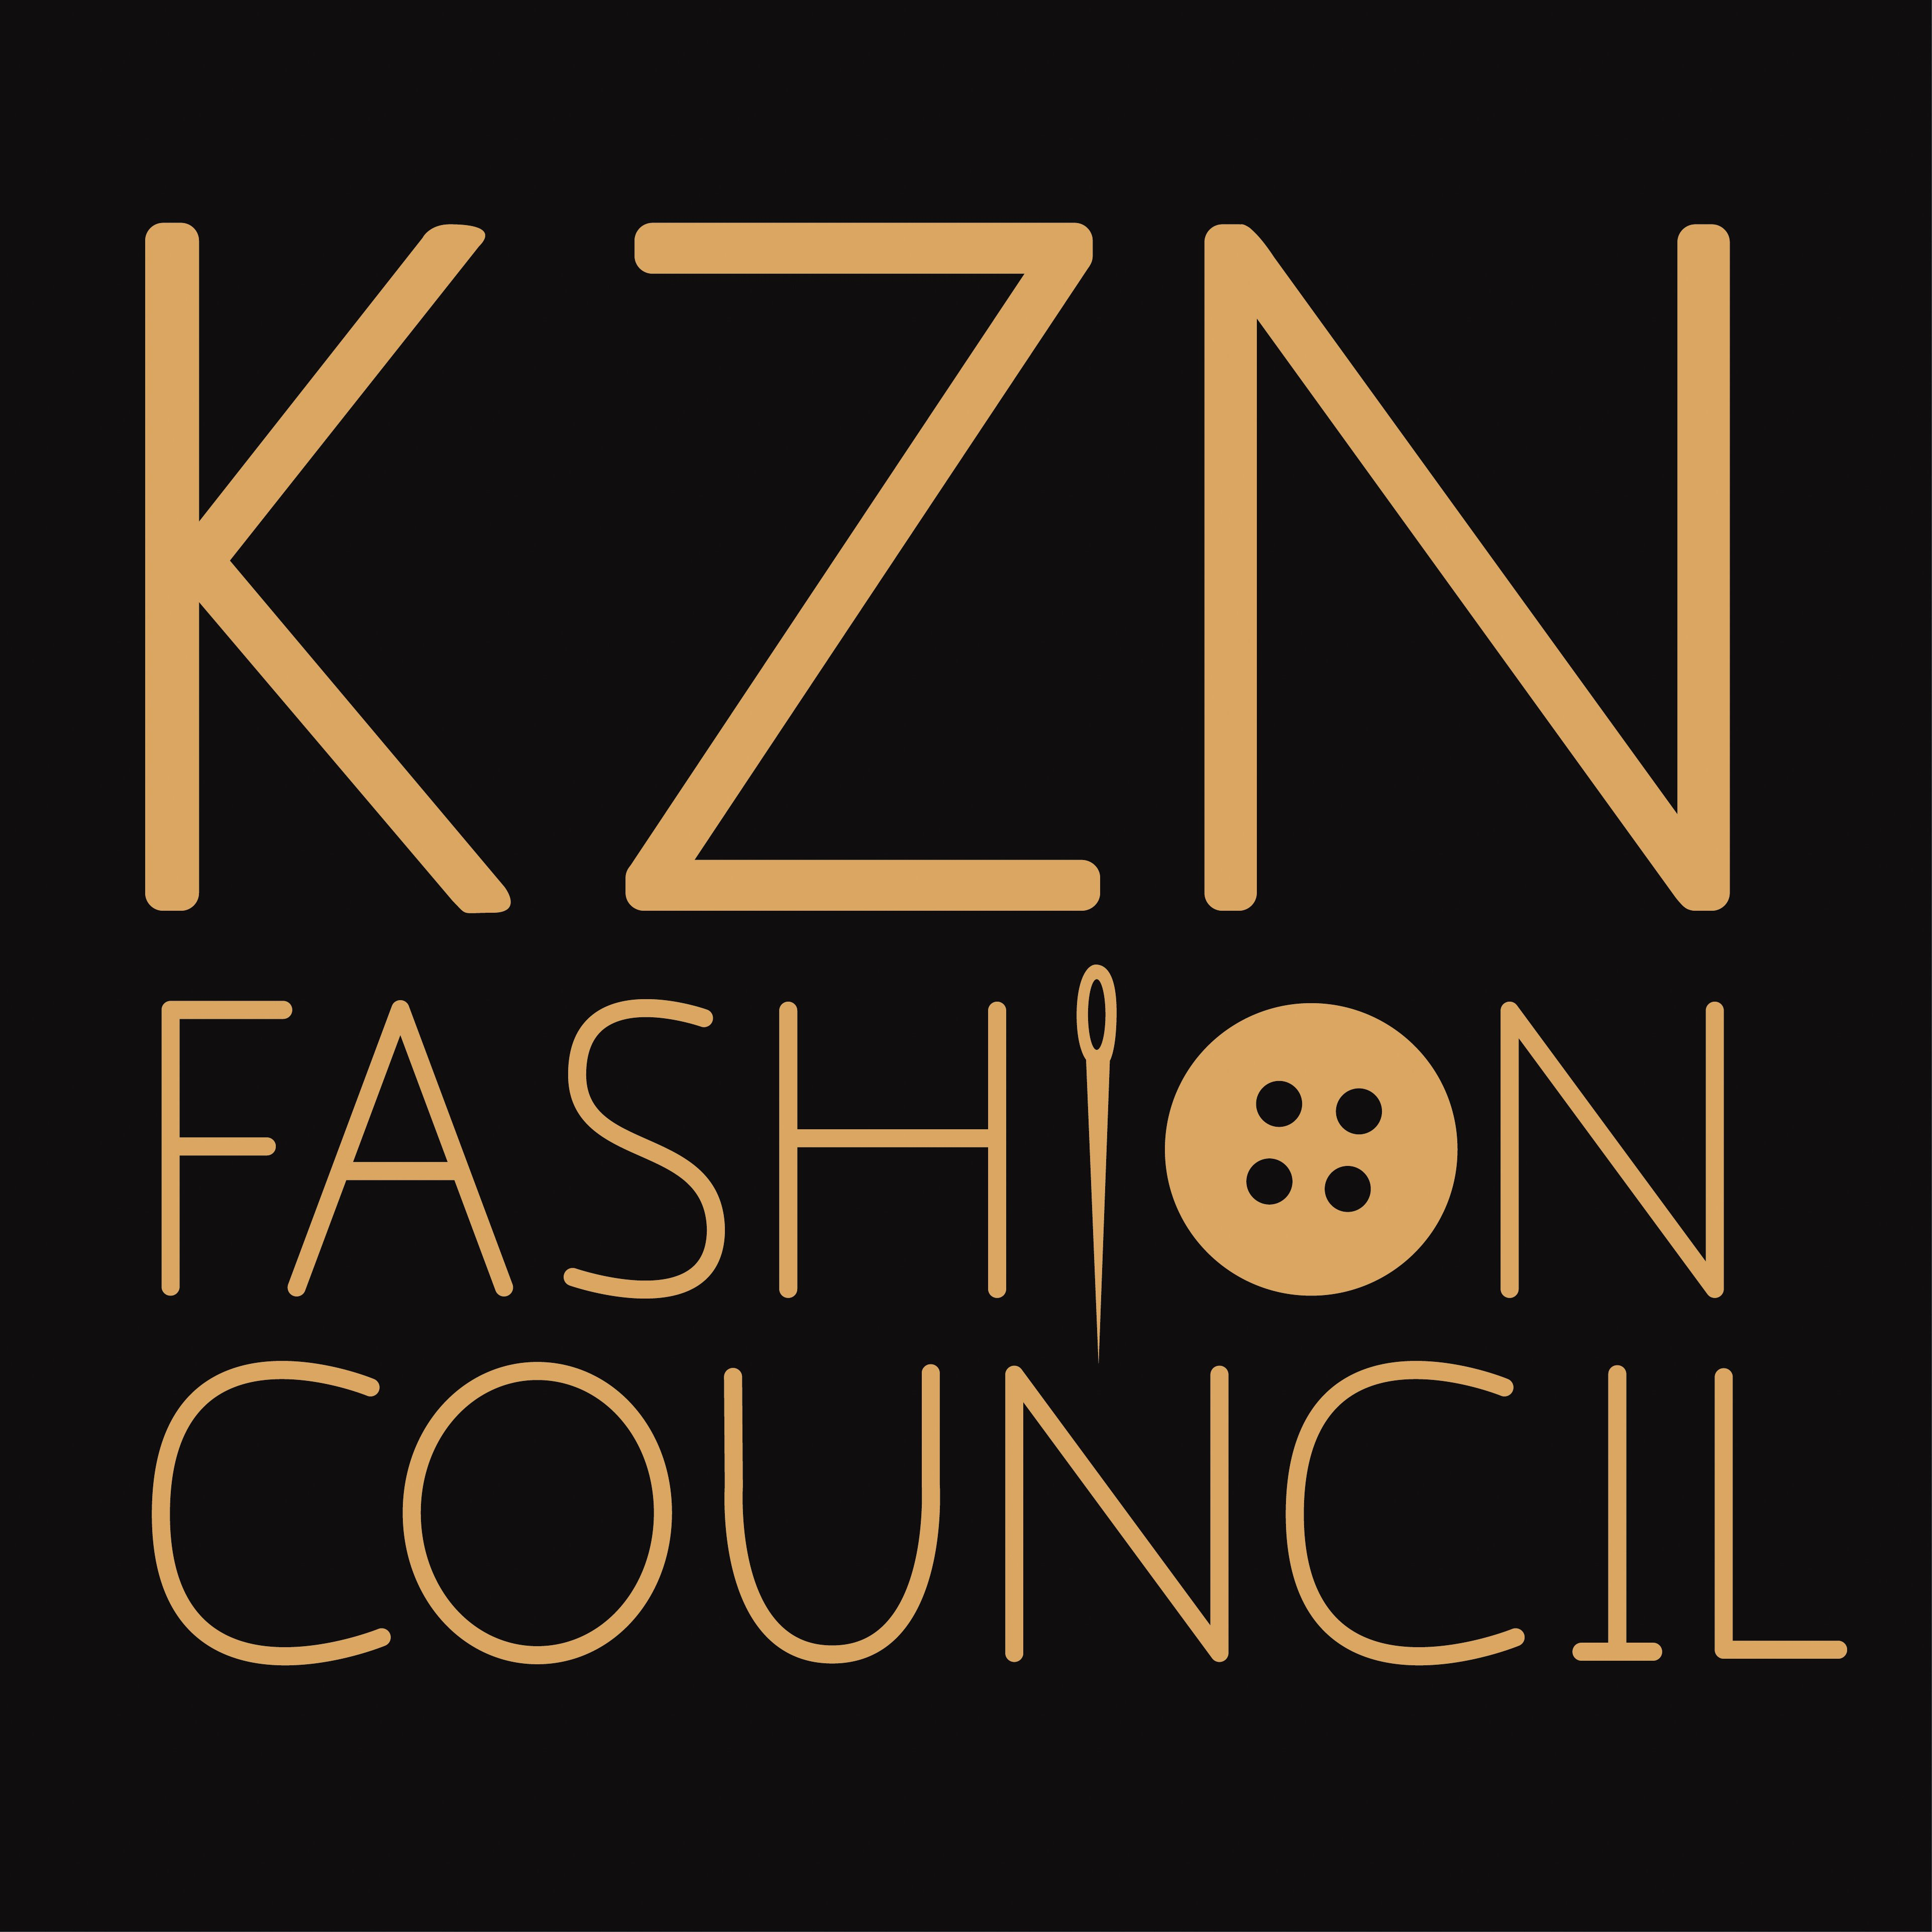 KZN Fashion Council